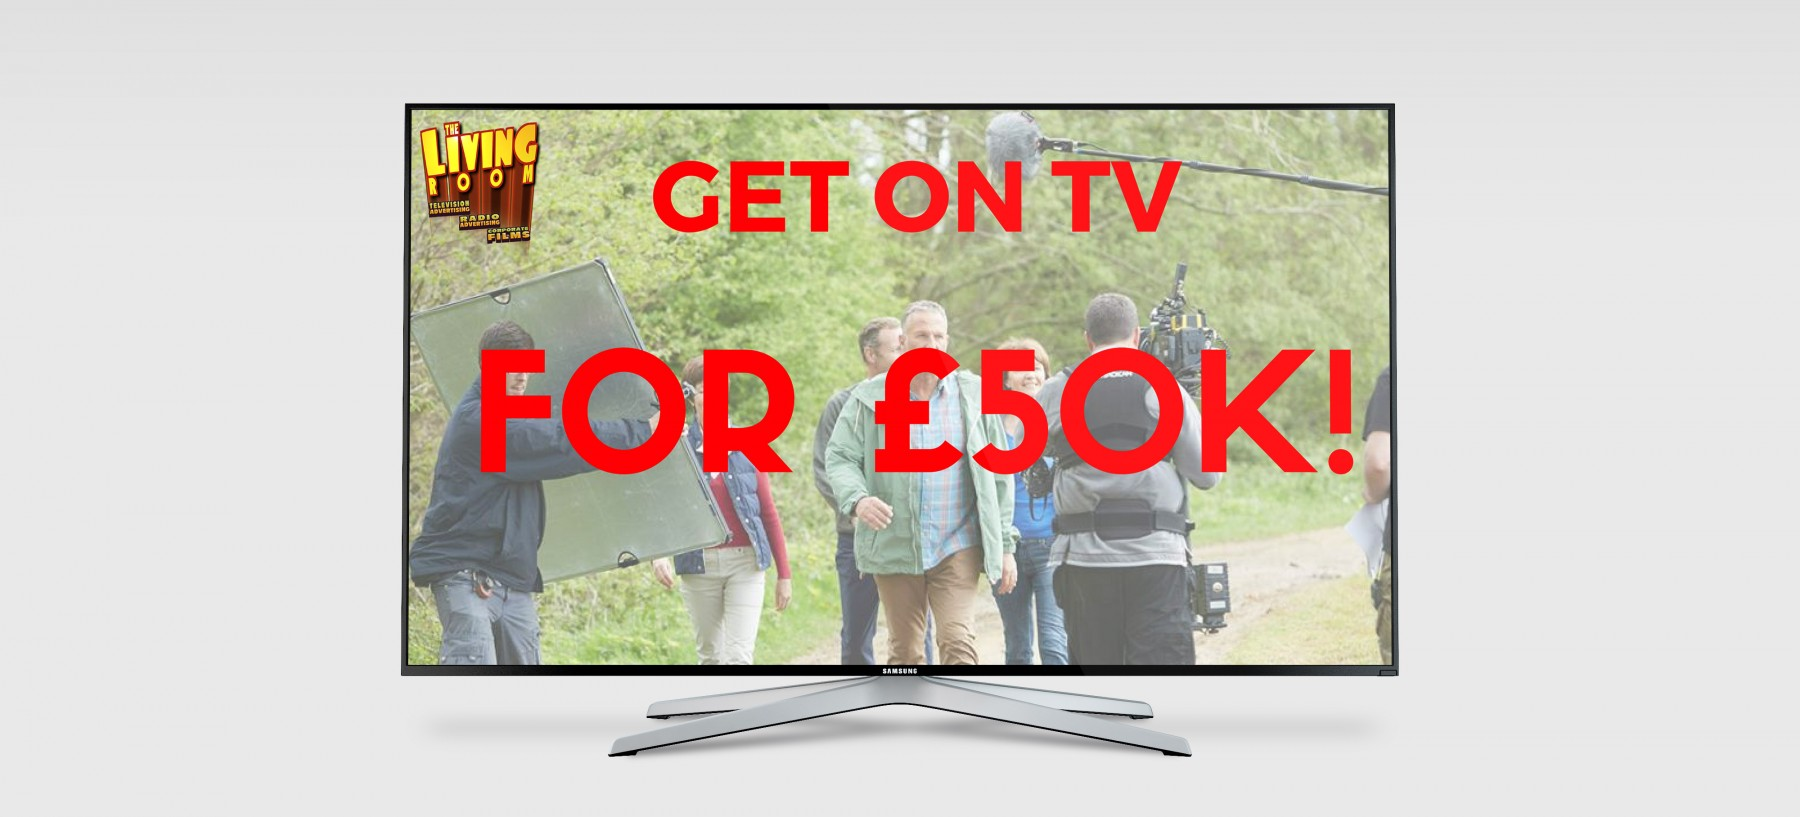 Get Your Brand On Tv For Just £50k!  The Living Room